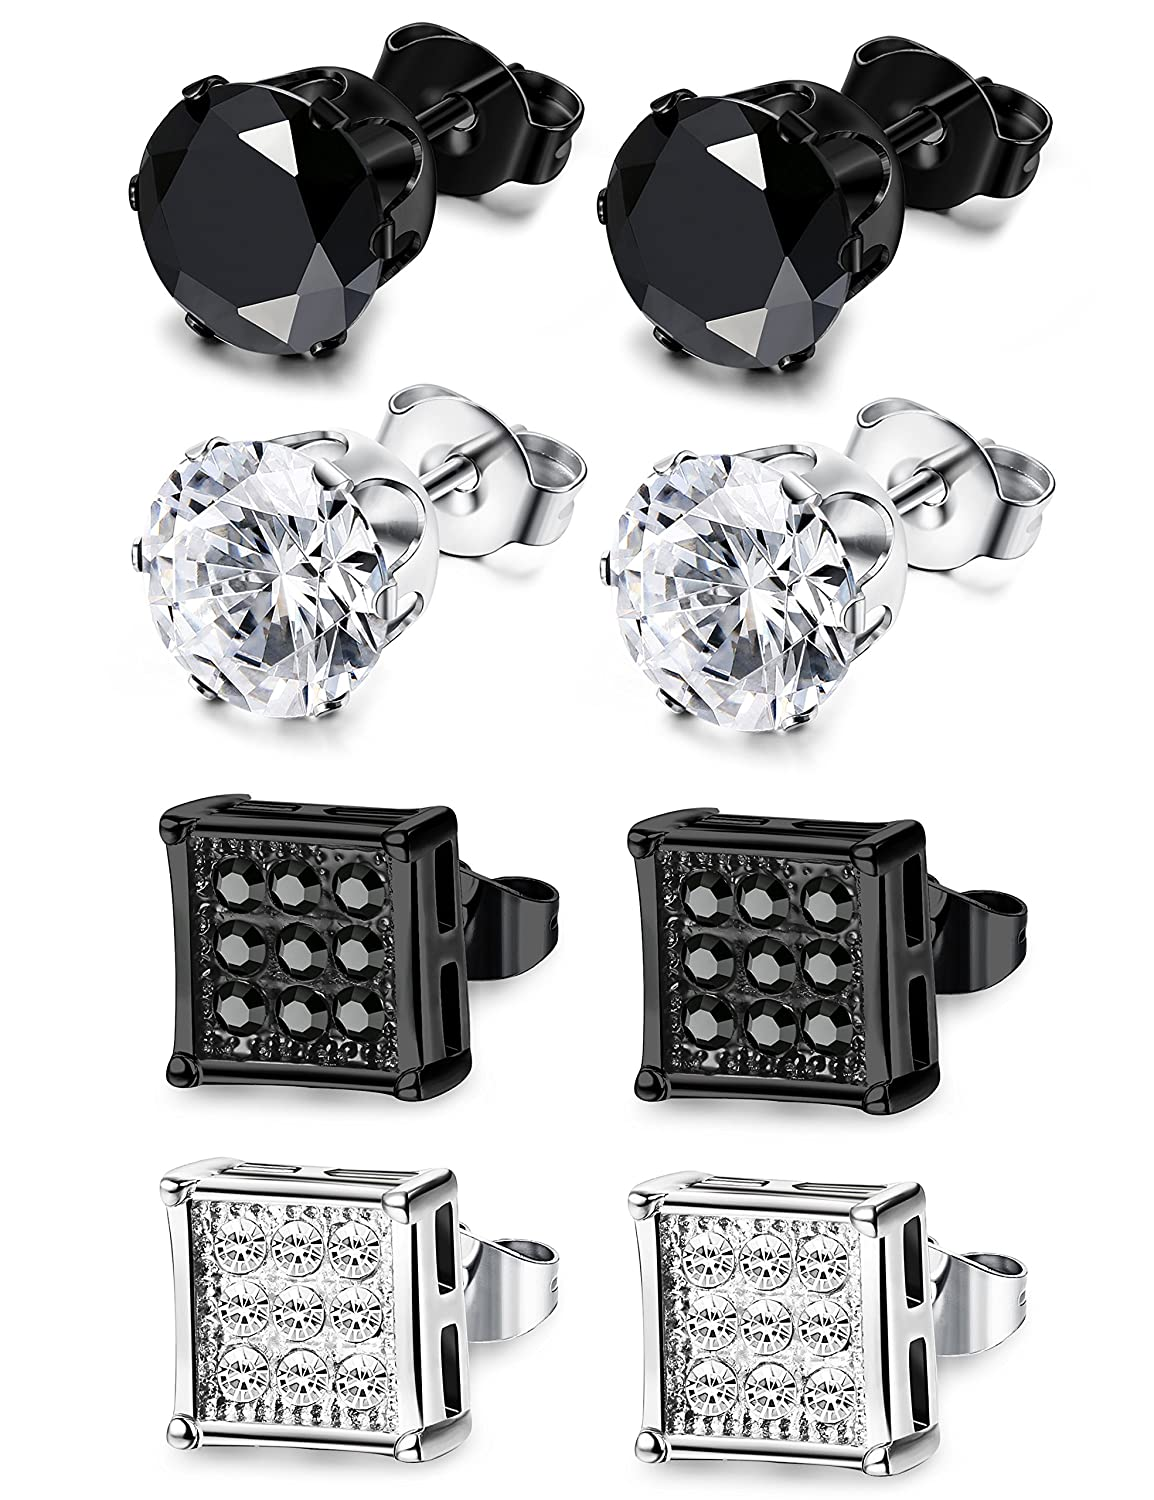 JOERICA 4 Pairs Stainless Steel Stud Earrings for Men Women Earrings CZ Inlaid, 6-8mm 6-8mm (A:6mm) ER-6BCZ-4PX